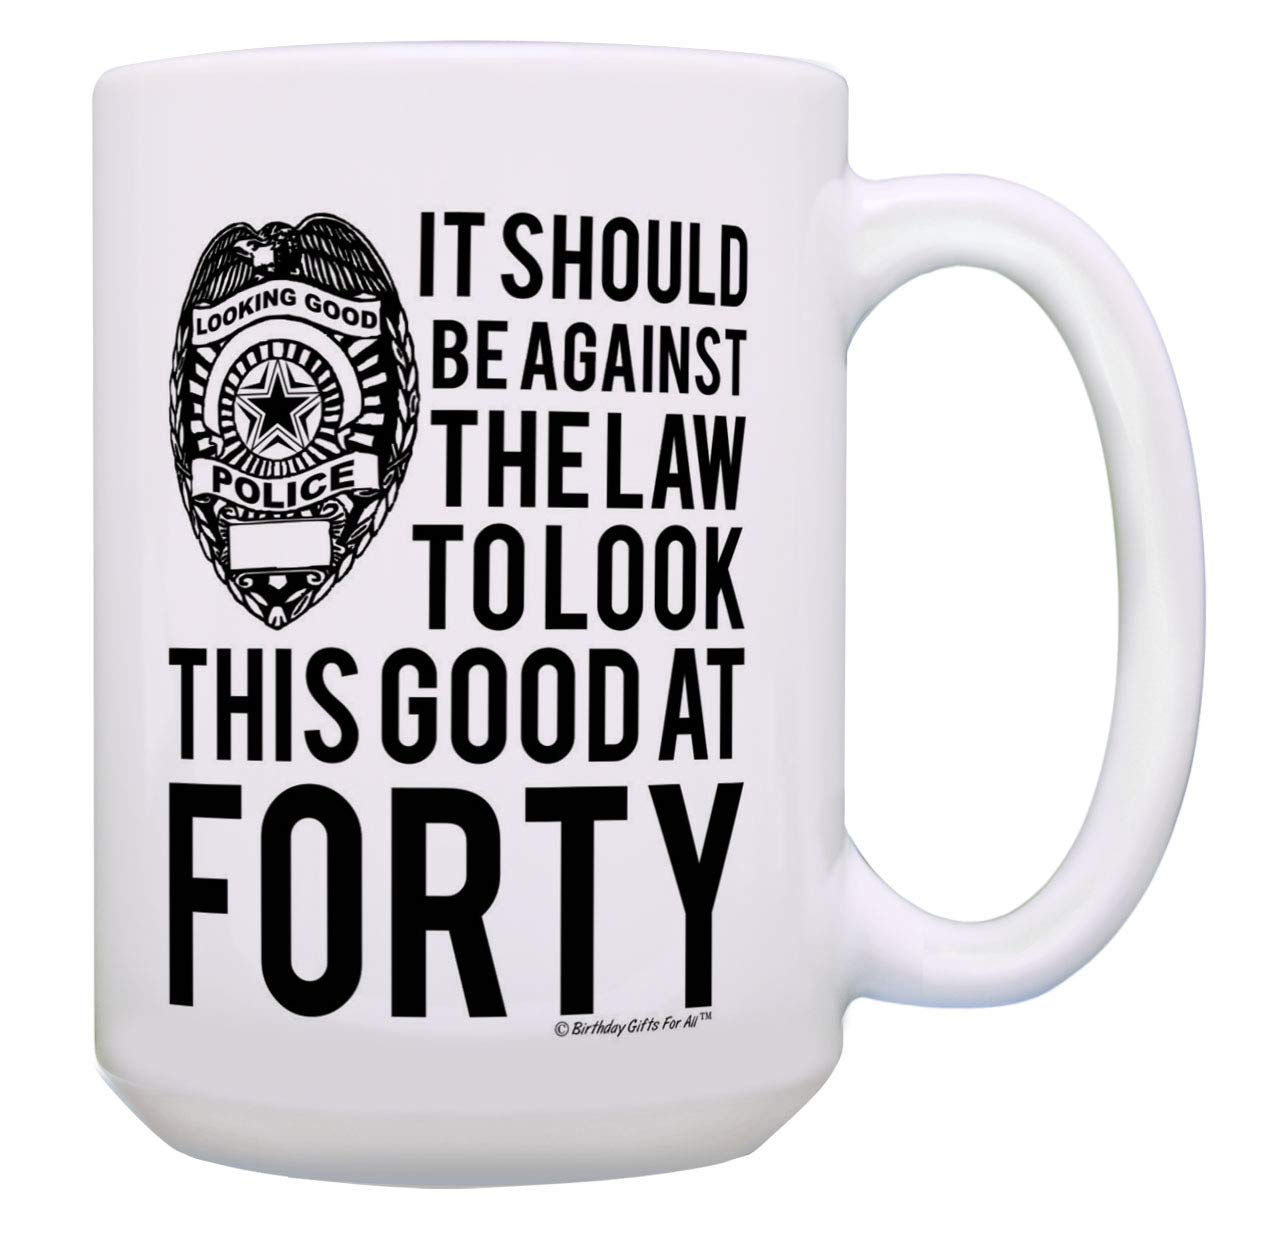 Taza de café con texto en inglés «Look This Good at Forty ...